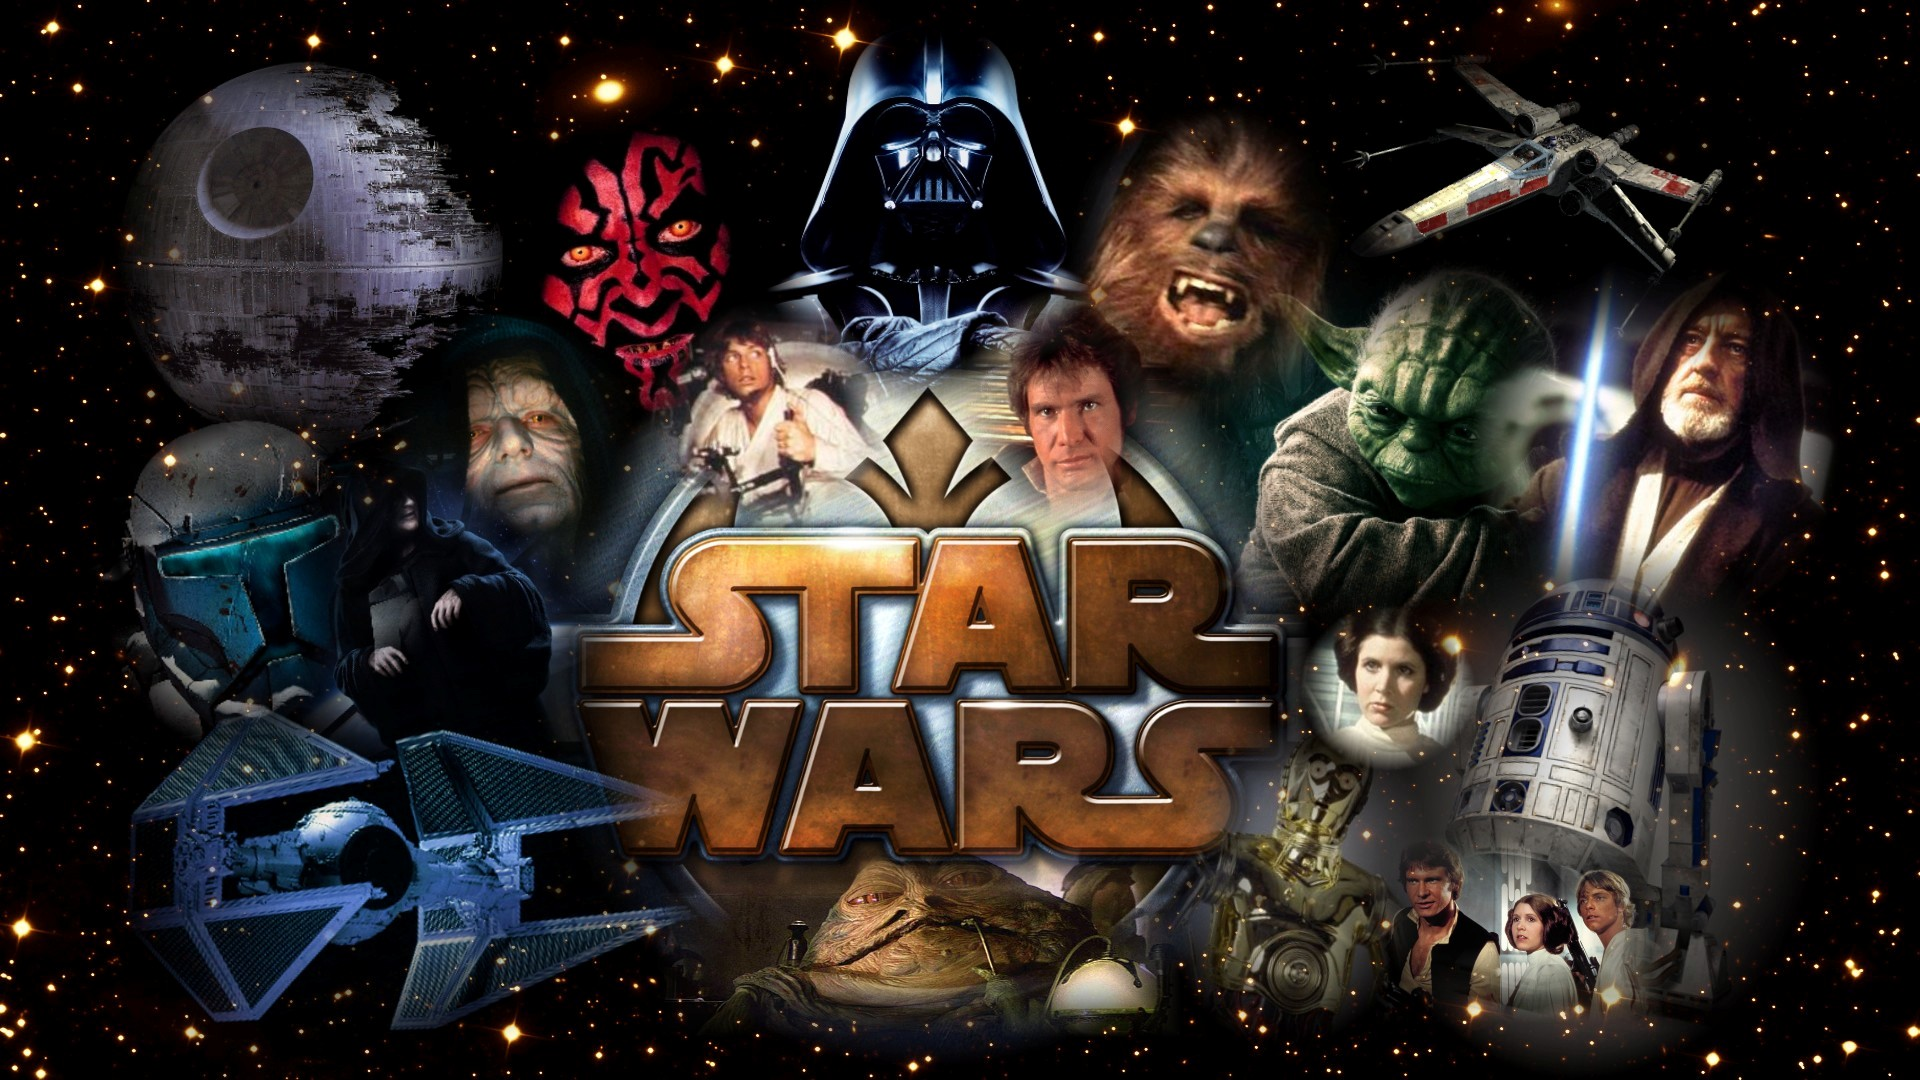 Luxurious Birthday Sheet Cakes Star Wars Photoshop App Which Re Is Only Star Wars Bleeding Star Wars Photos Grim Future photos Star Wars Photos